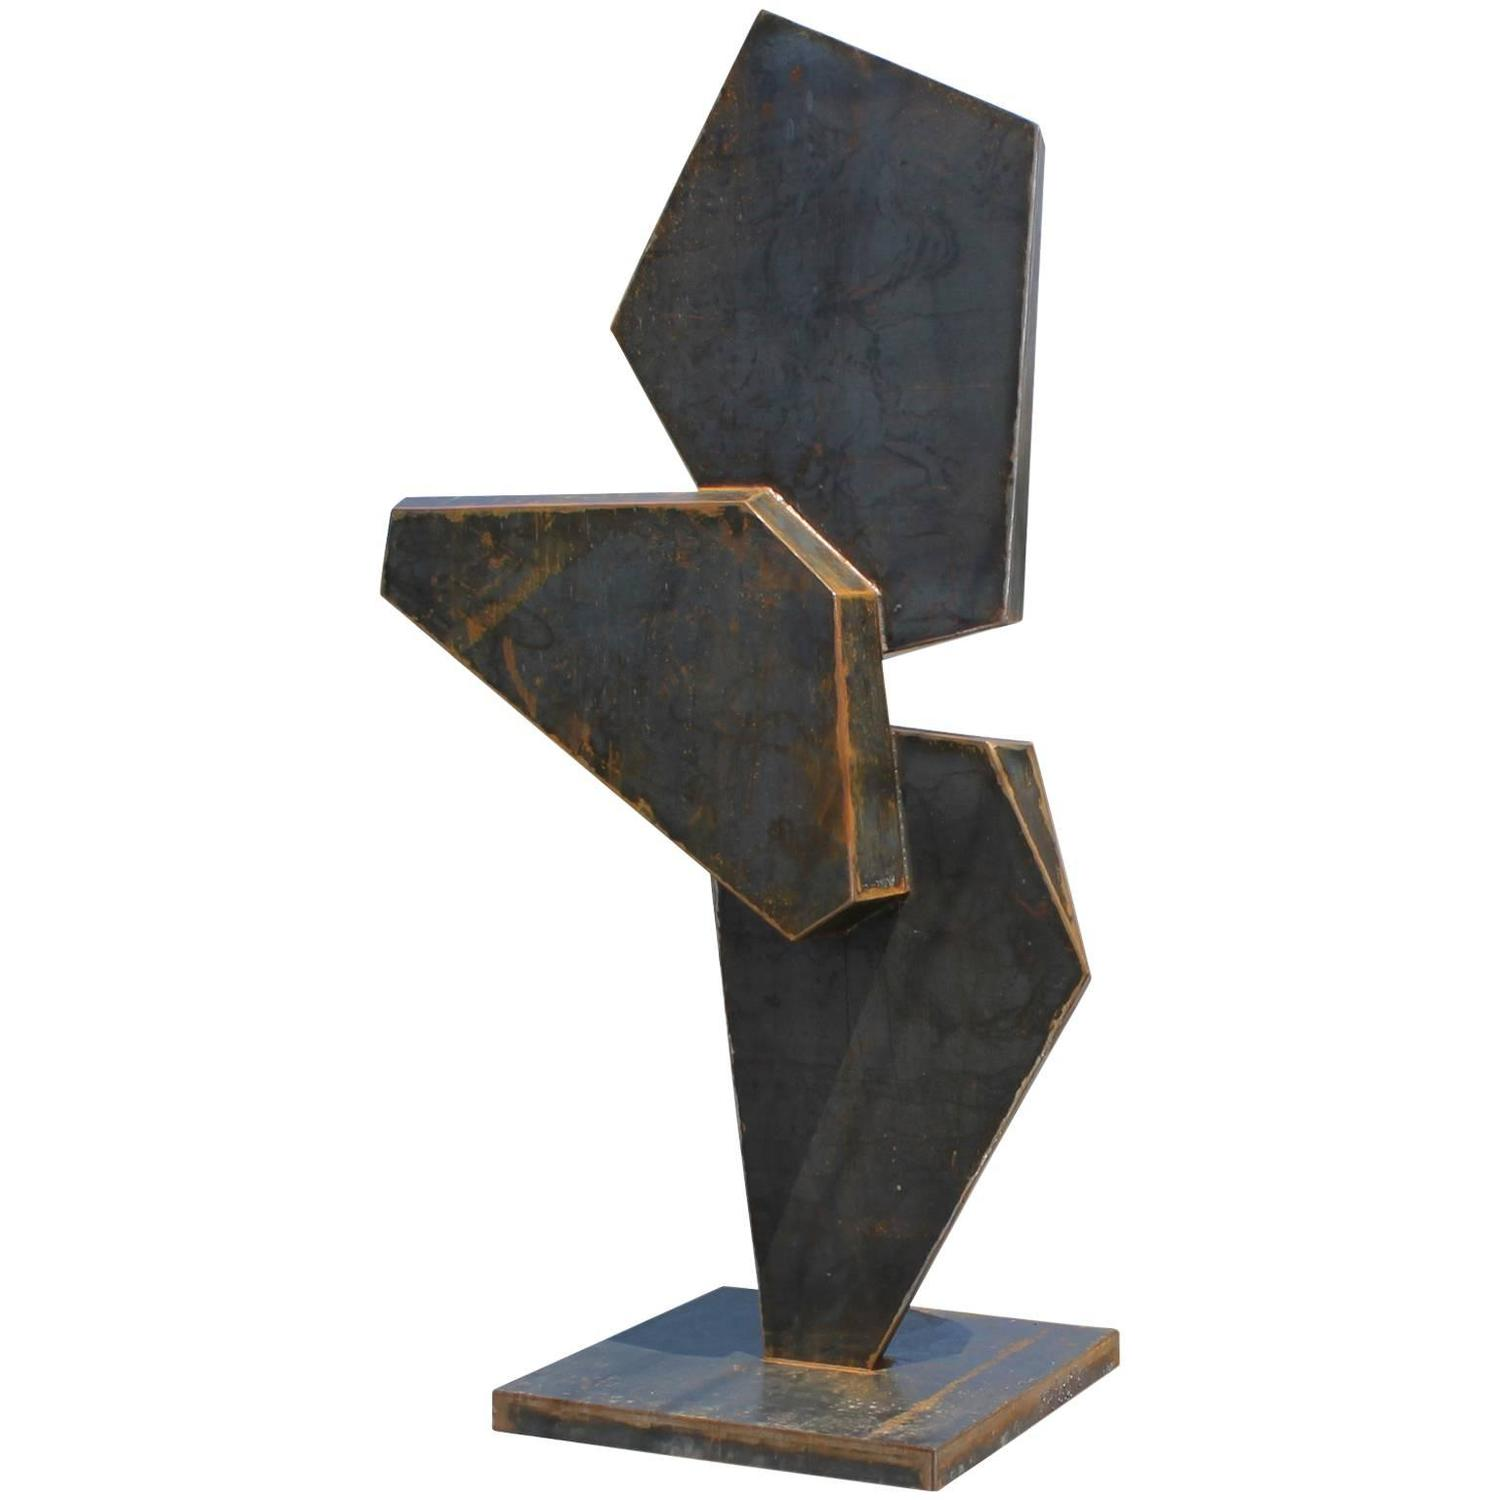 stunning steel chair attacks unfinished wood kitchen chairs monumental geometric corten sculpture for